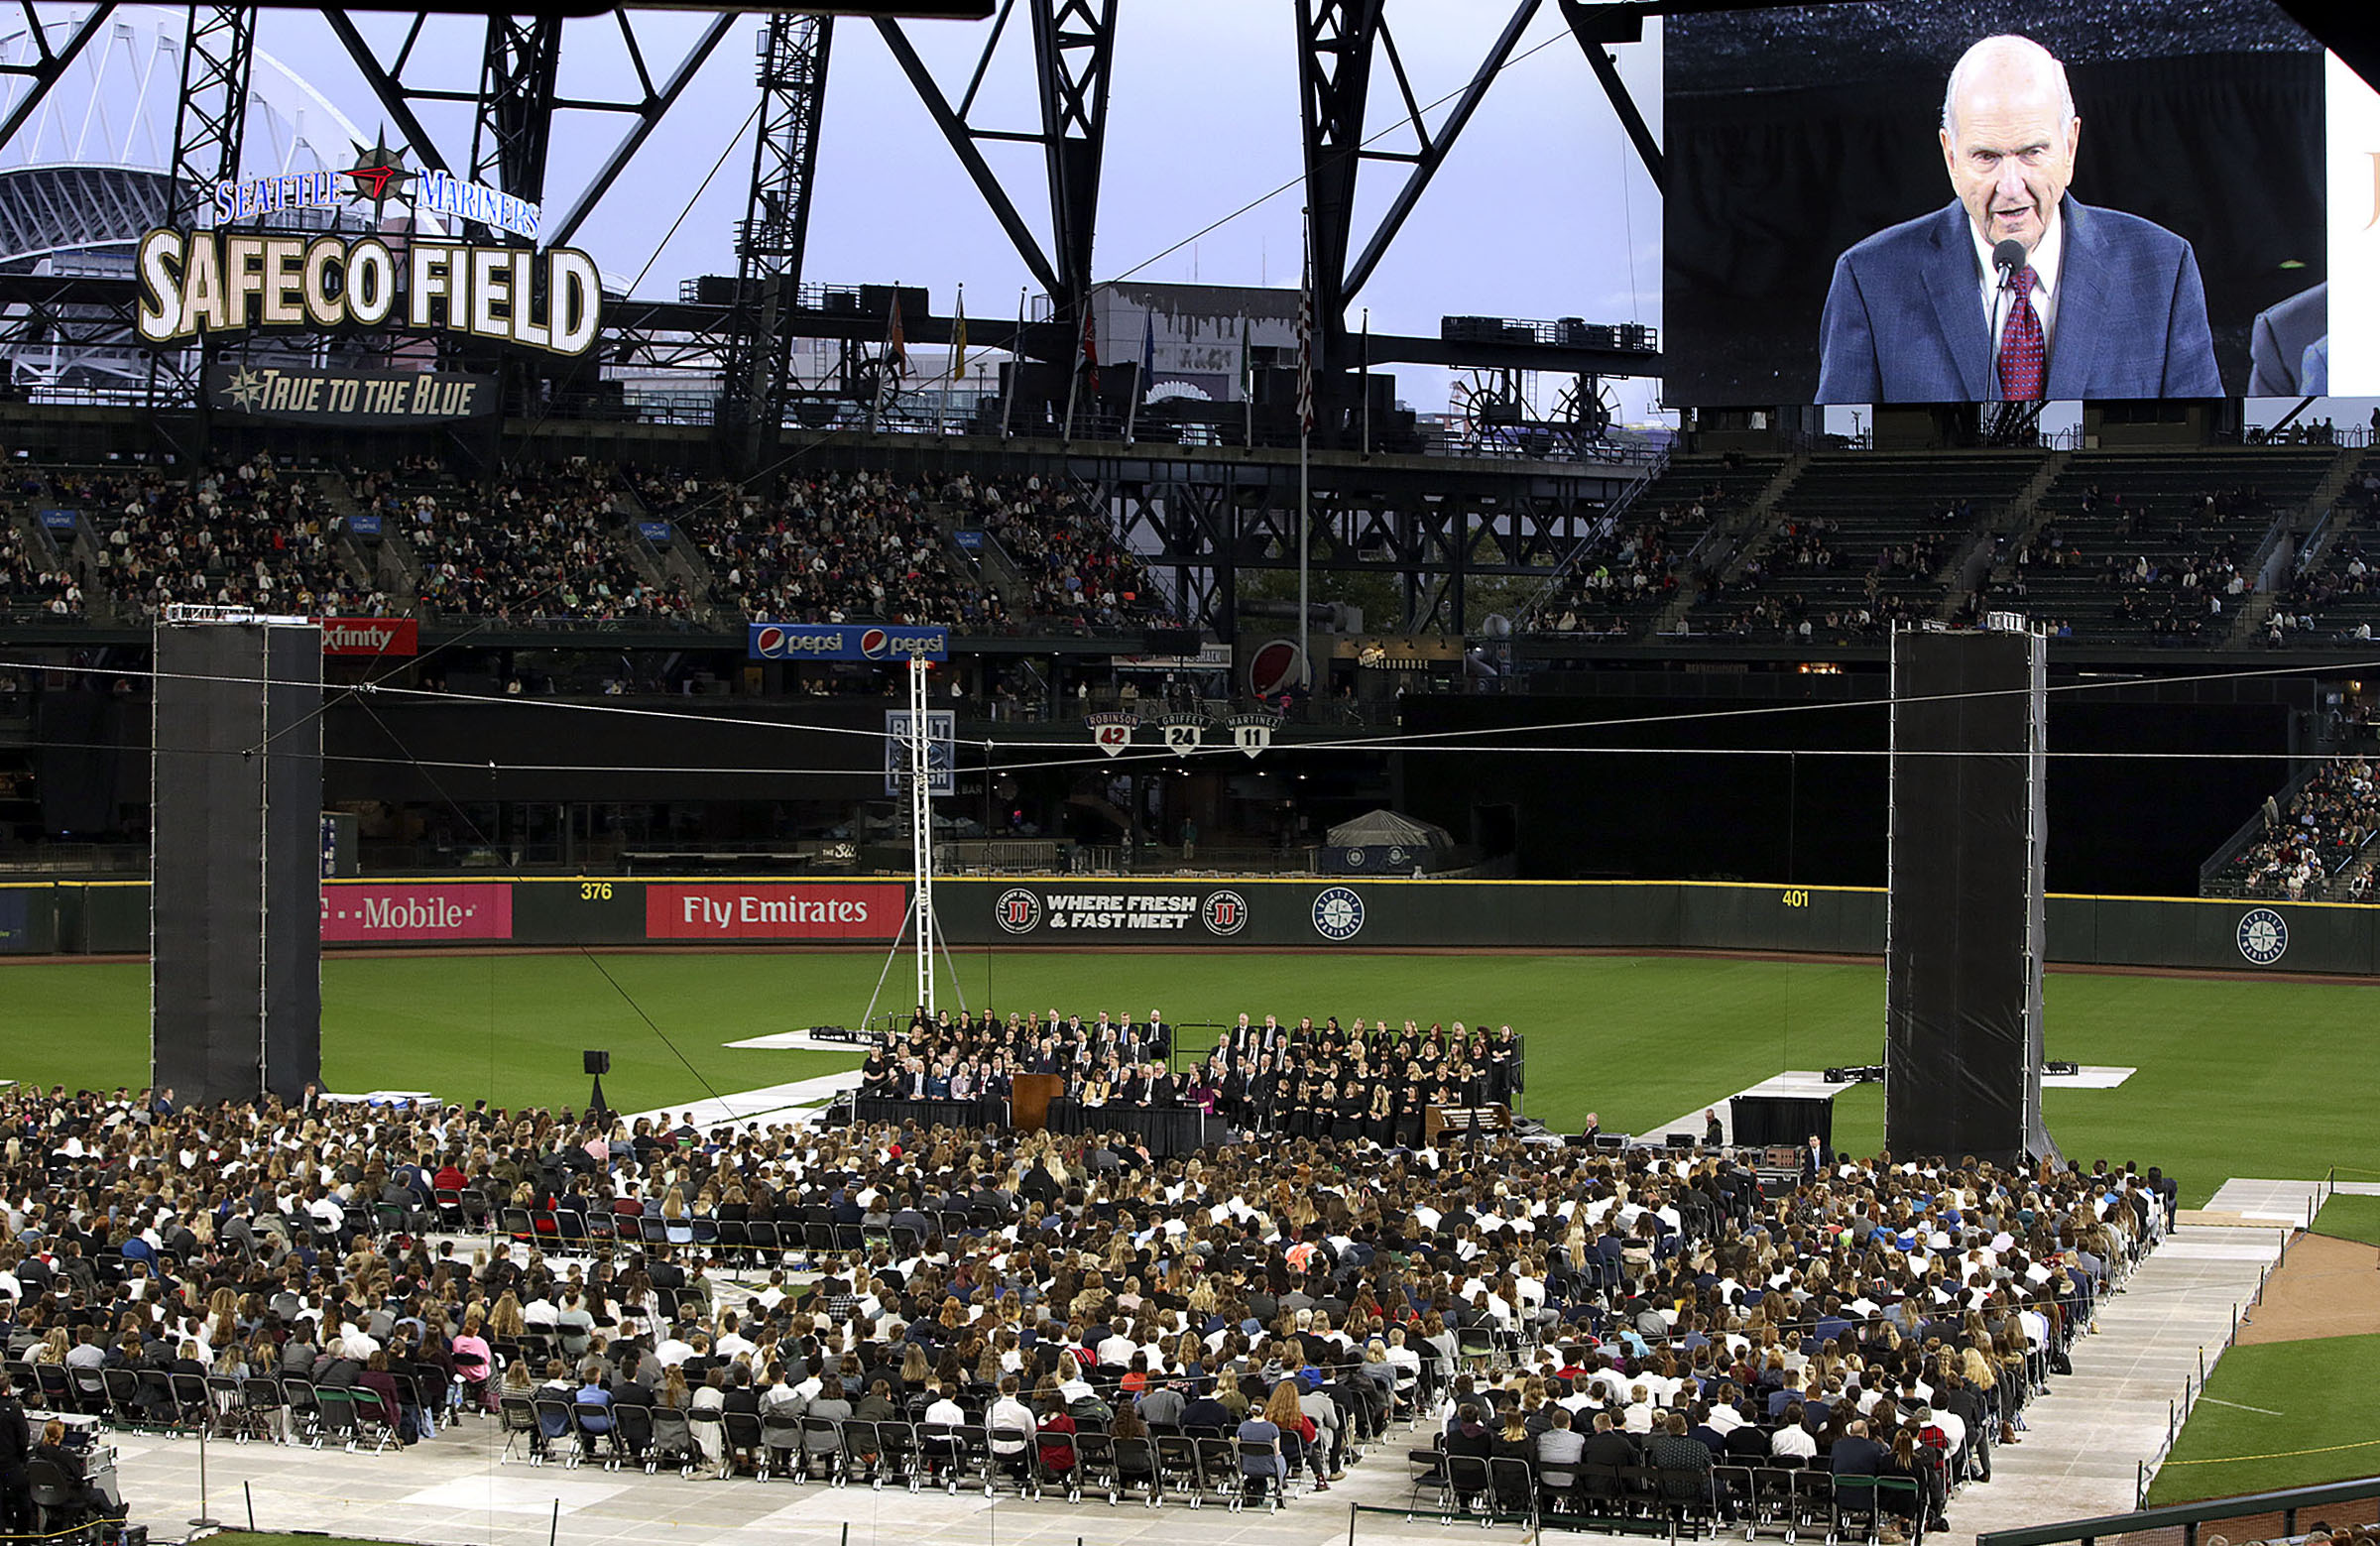 President Russell M. Nelson of The Church of Jesus Christ of Latter-day Saints speaks to a crowd of more than 49,000 people at Safeco Field in Seattle, Wash., on Saturday, Sept. 15, 2018.